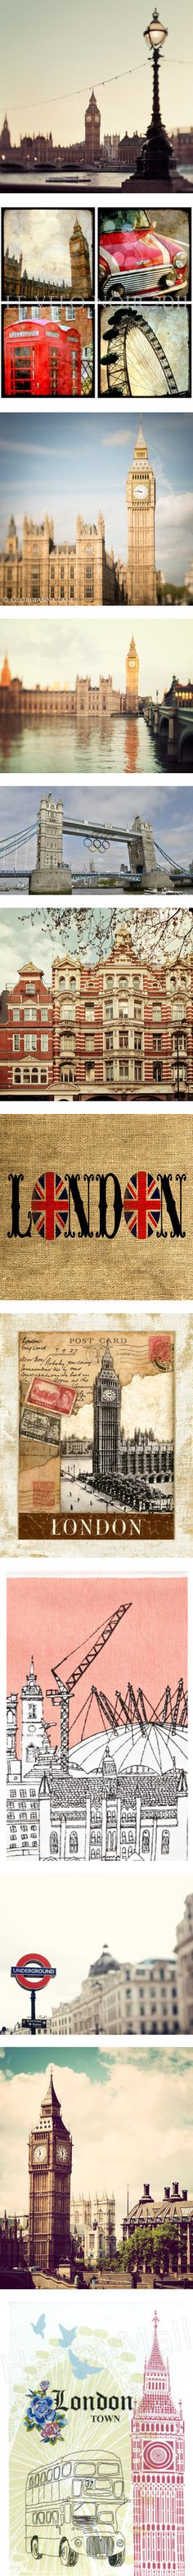 """London 3"" by quidiuris27 ❤ liked on Polyvore"